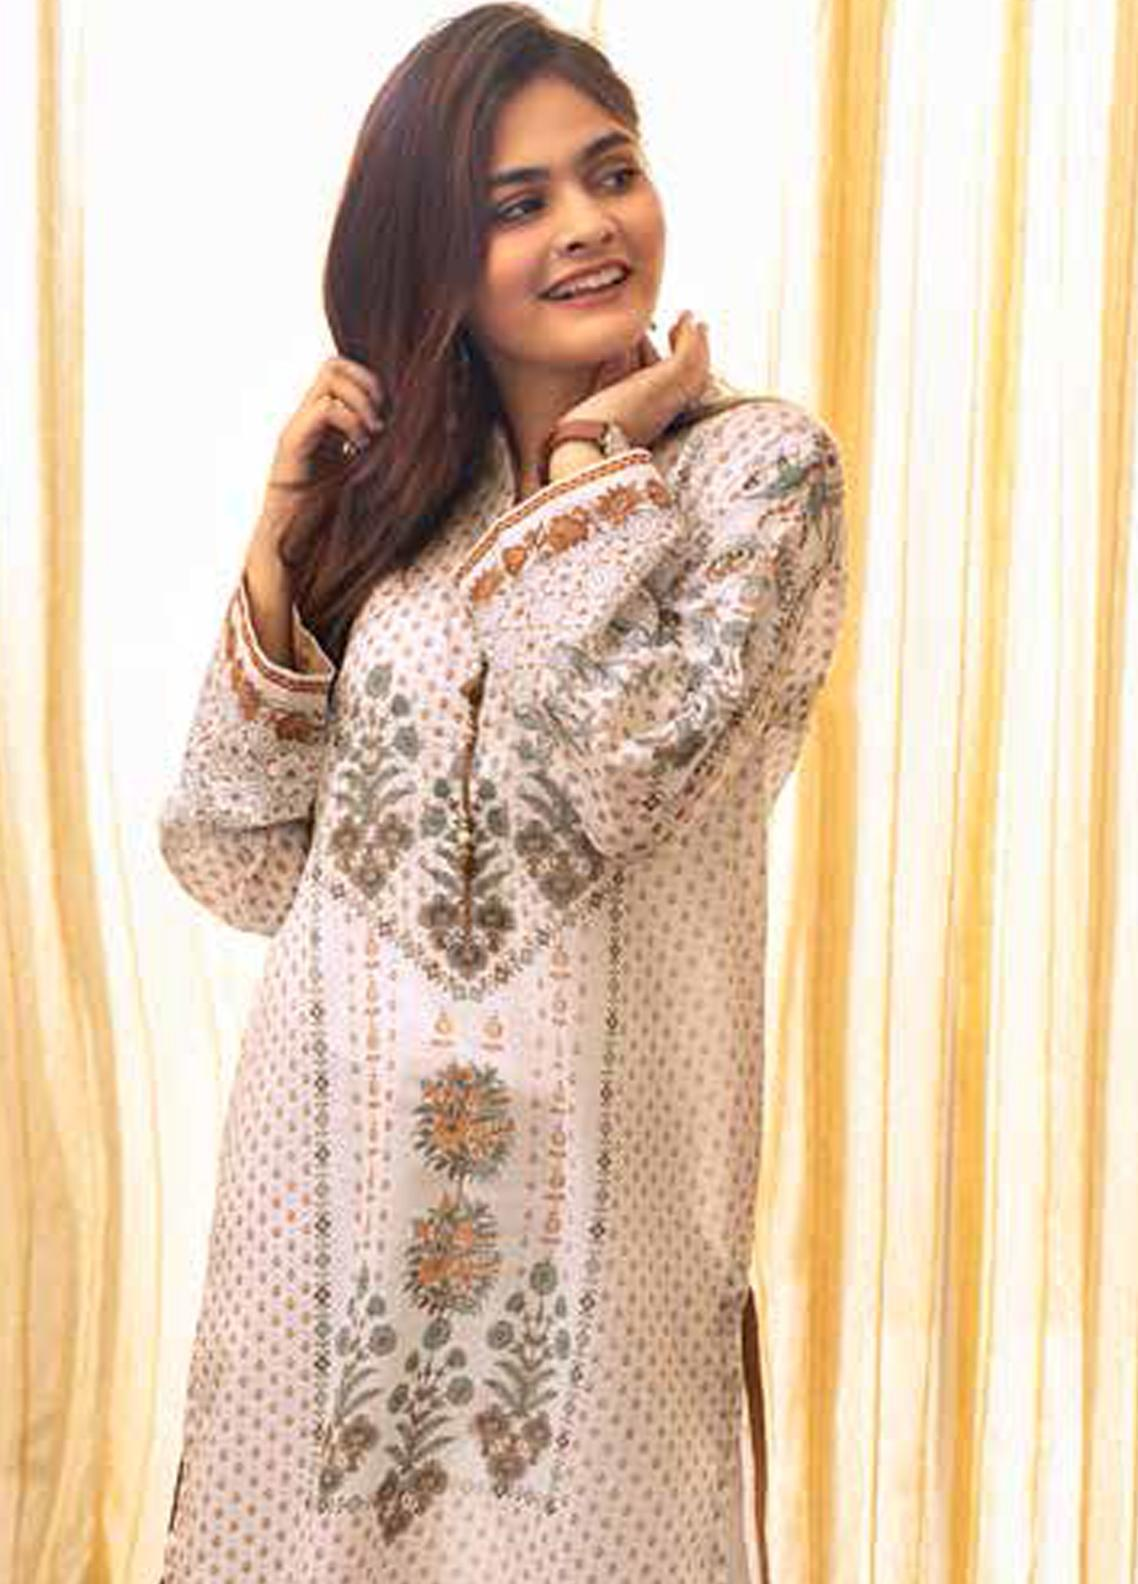 Gul Ahmed Printed Lawn Unstitched 3 Piece Suit (Two Shirts & One Bottom) GA19M CL-643 - Spring / Summer Collection